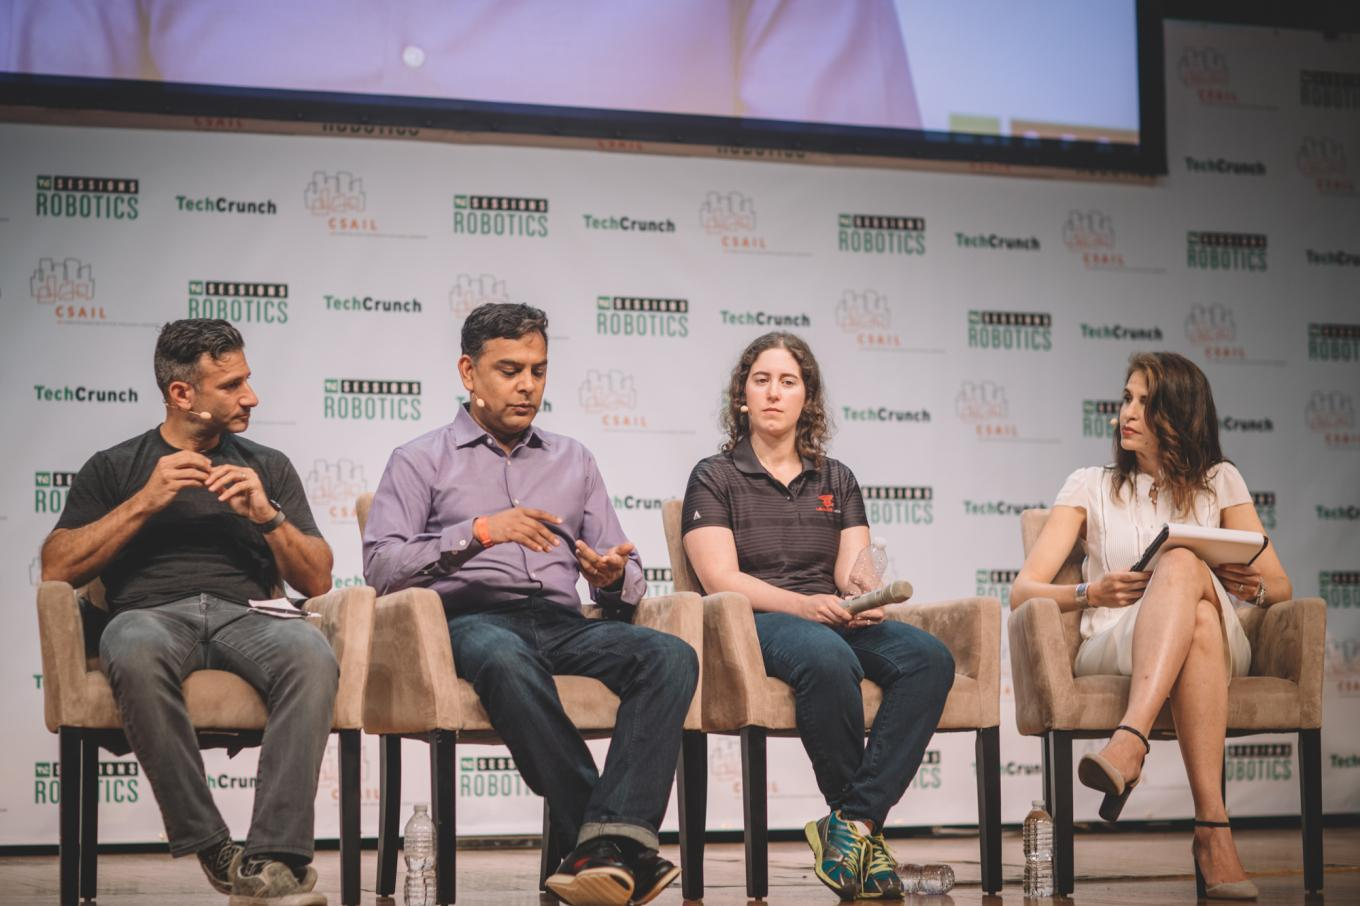 Is Venture Ready for Robotics? with Manish Kothari (SRI), Josh Wolfe (Lux Capital) and Helen Zelman (Lemnos)